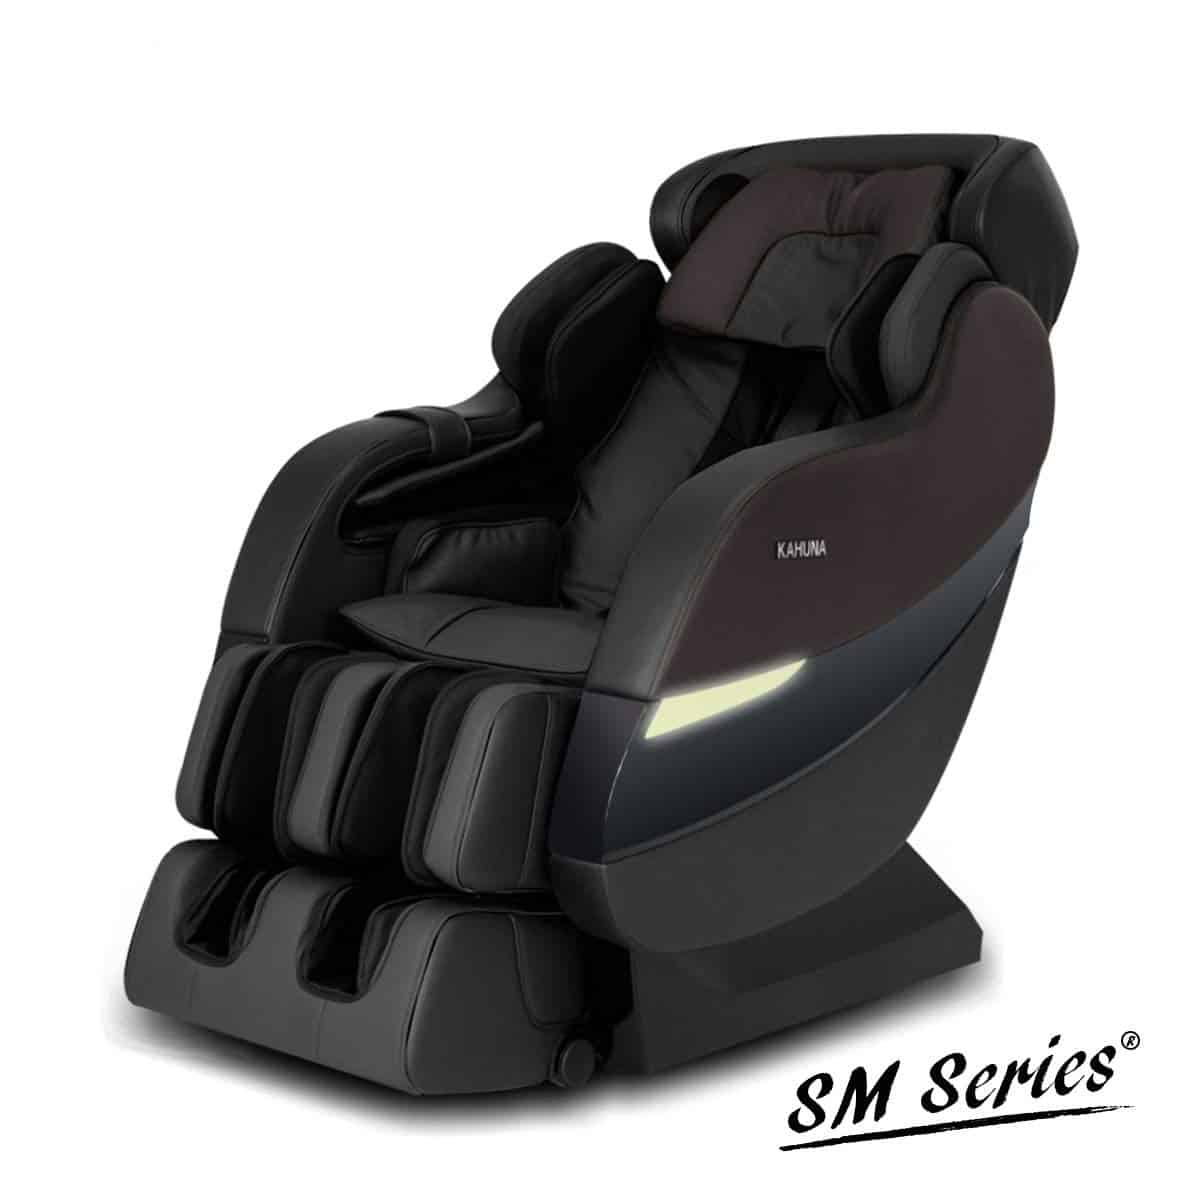 Kahuna Massage Chair with SL-Track 6 Rollers (SM-7300S)